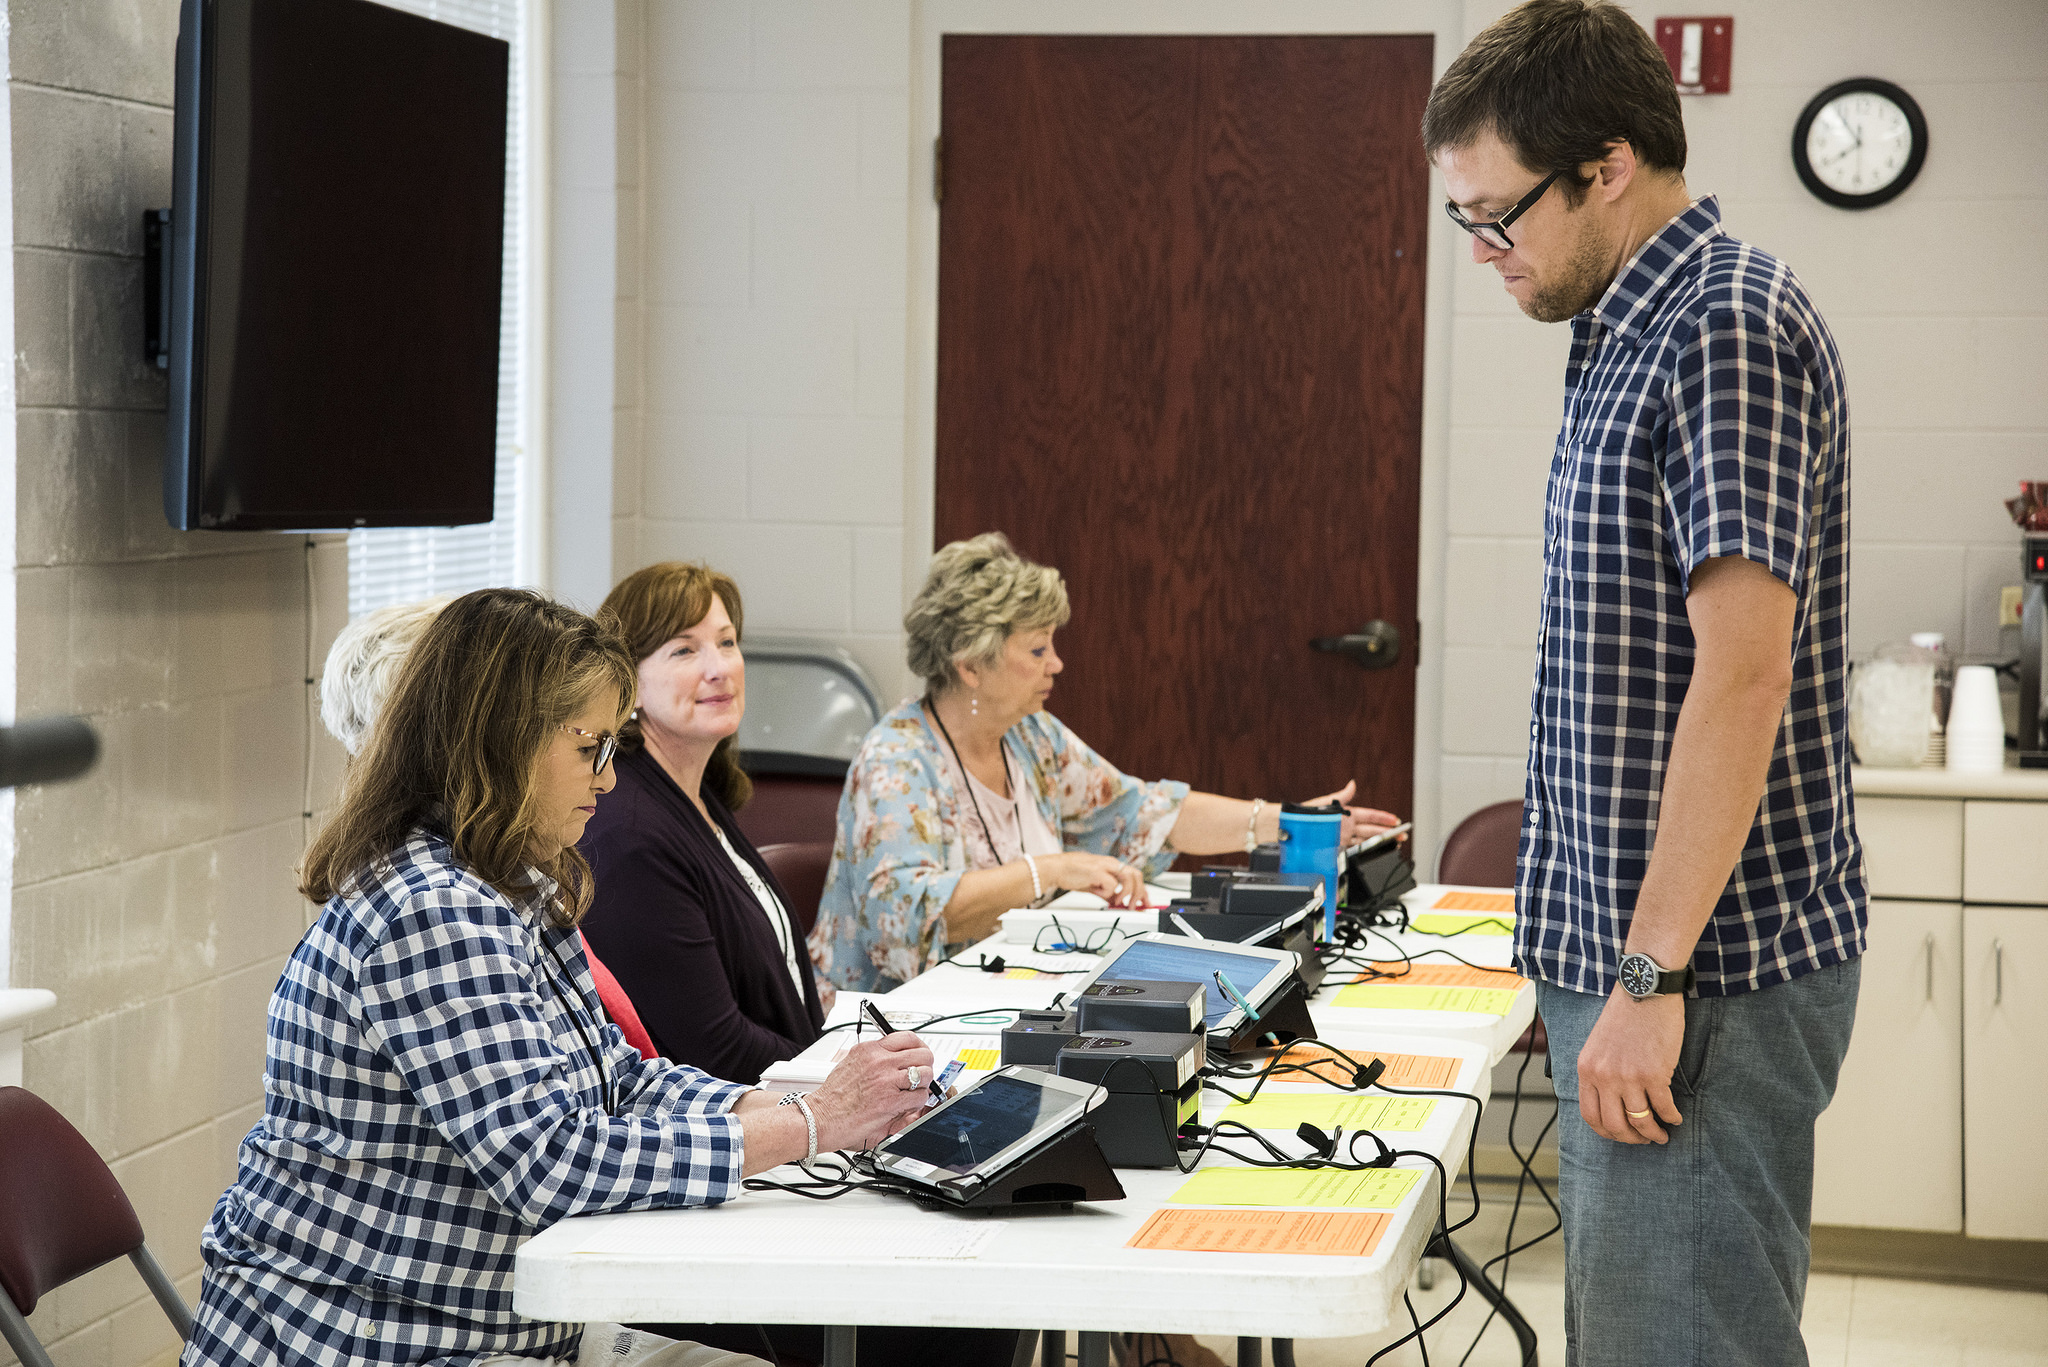 An Arkansas voter provides his information to poll workers